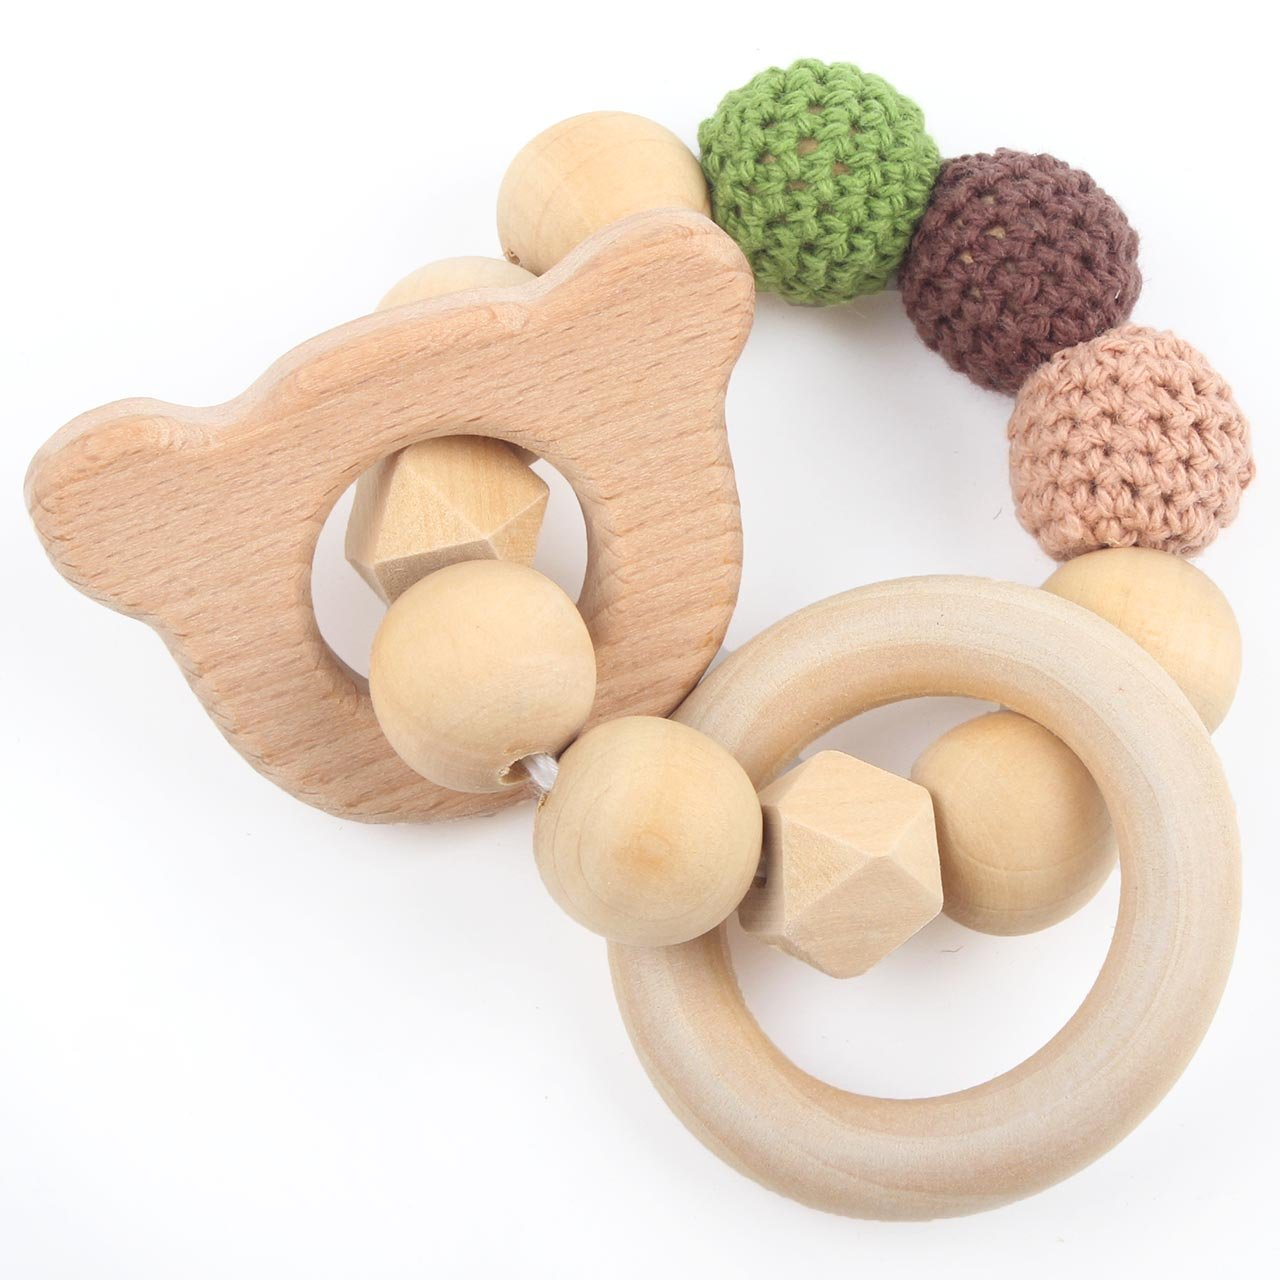 HI BABY MOMENT Baby Nature Teether Grasping Toys Cartoon Animal Bear Shape Boys and Girls Rattle DIY Jewelry Teething, Army Green